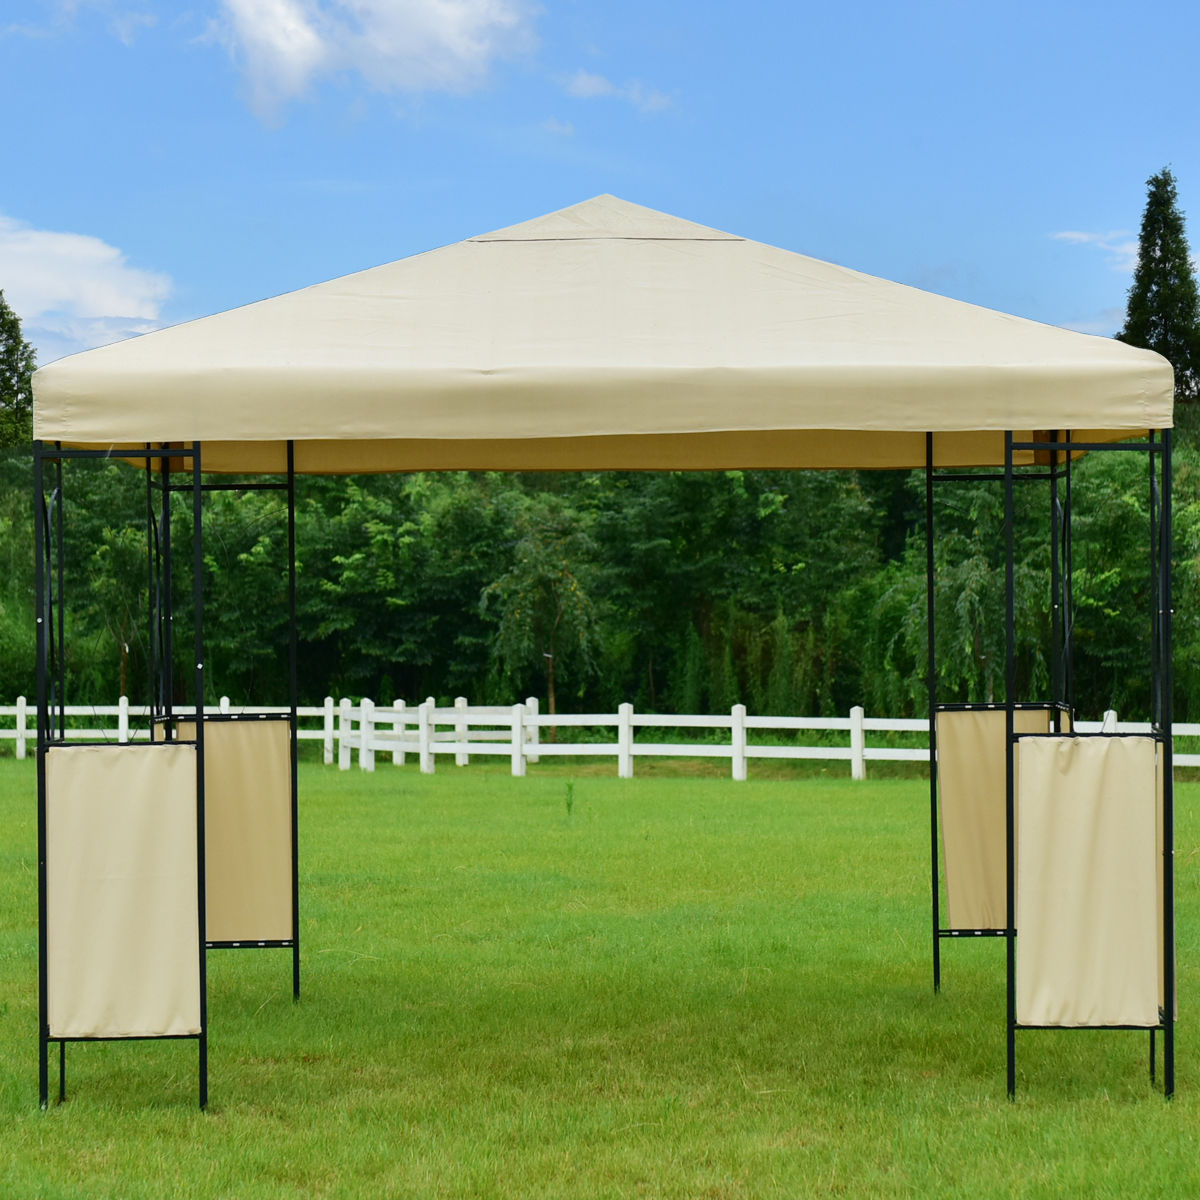 outdoor garden ez patio awning best function concept portable tent up custom canopies pop modern and cover logo canopy china